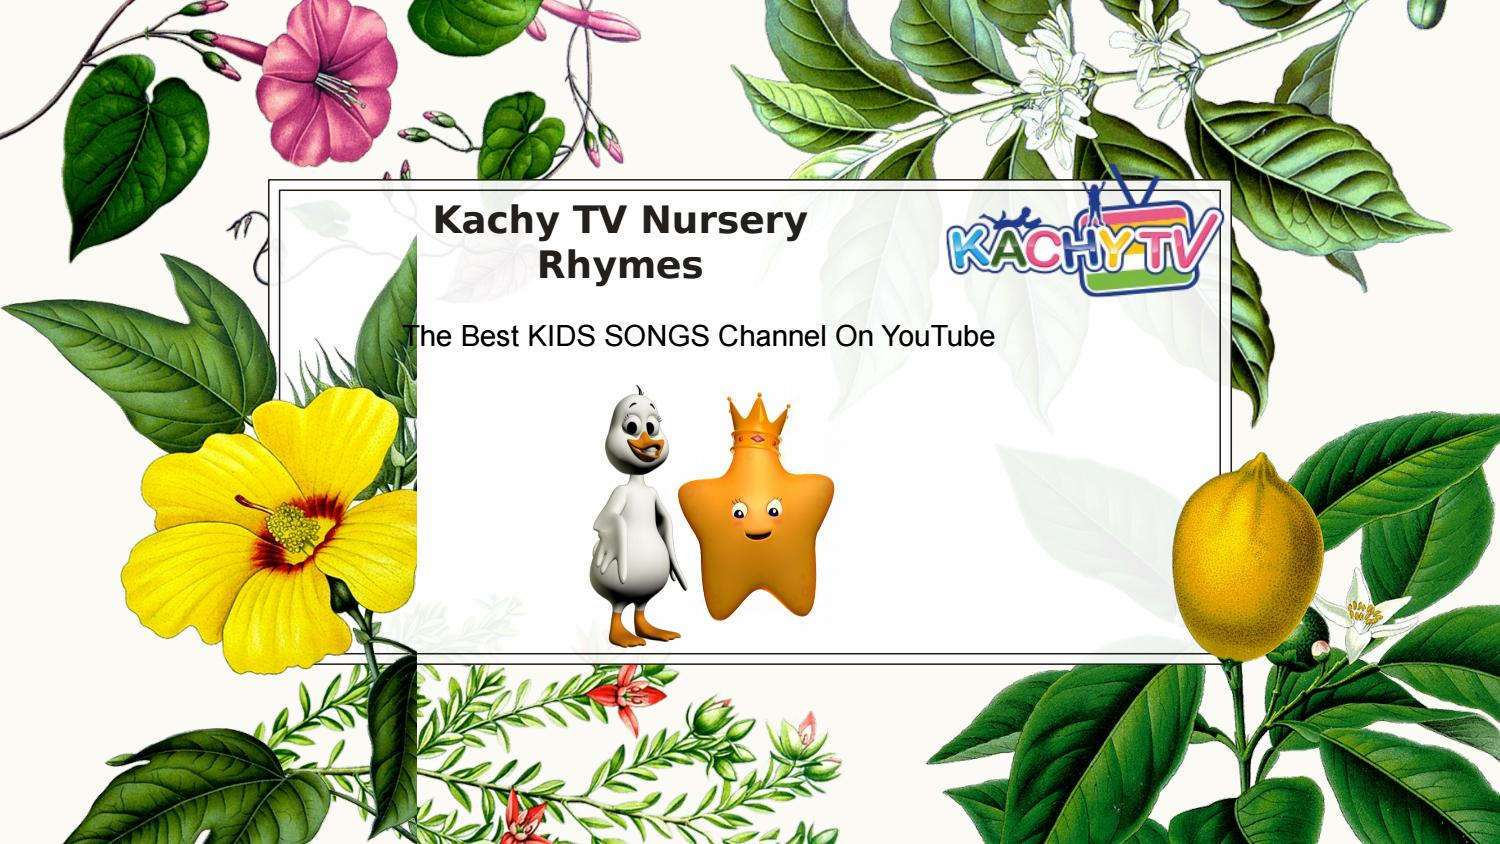 Mary had a little lamb video free download by kachy tv - issuu